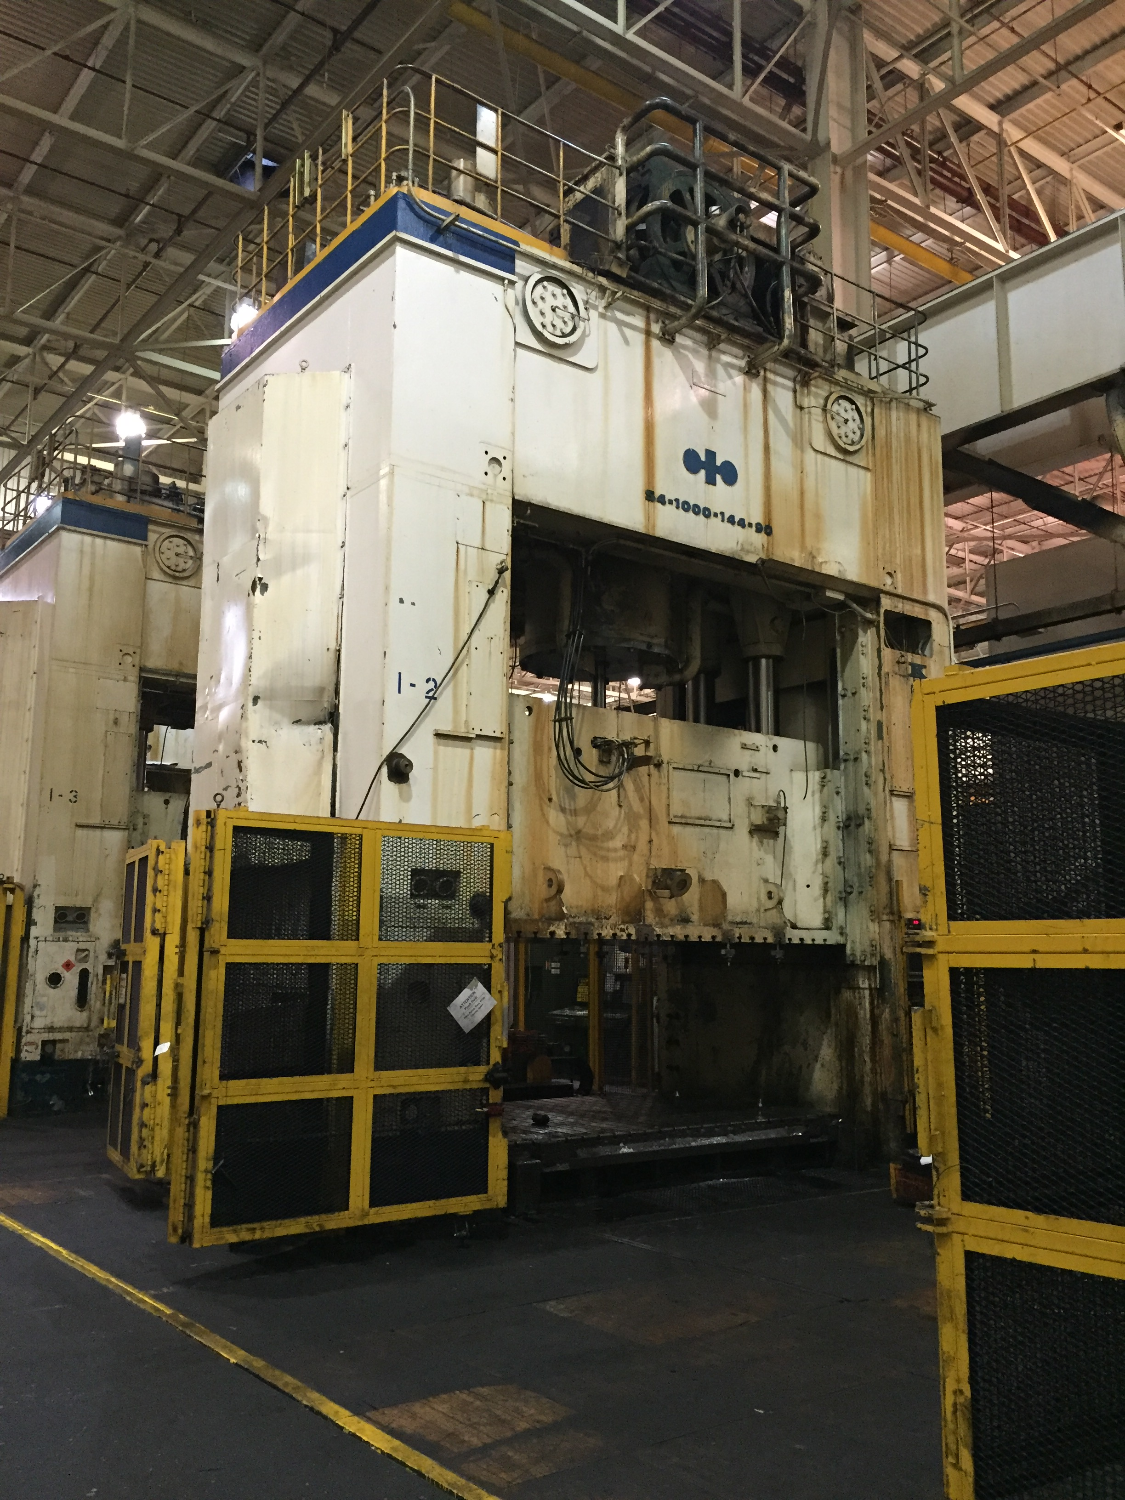 Komatsu 1000 ton press for sale